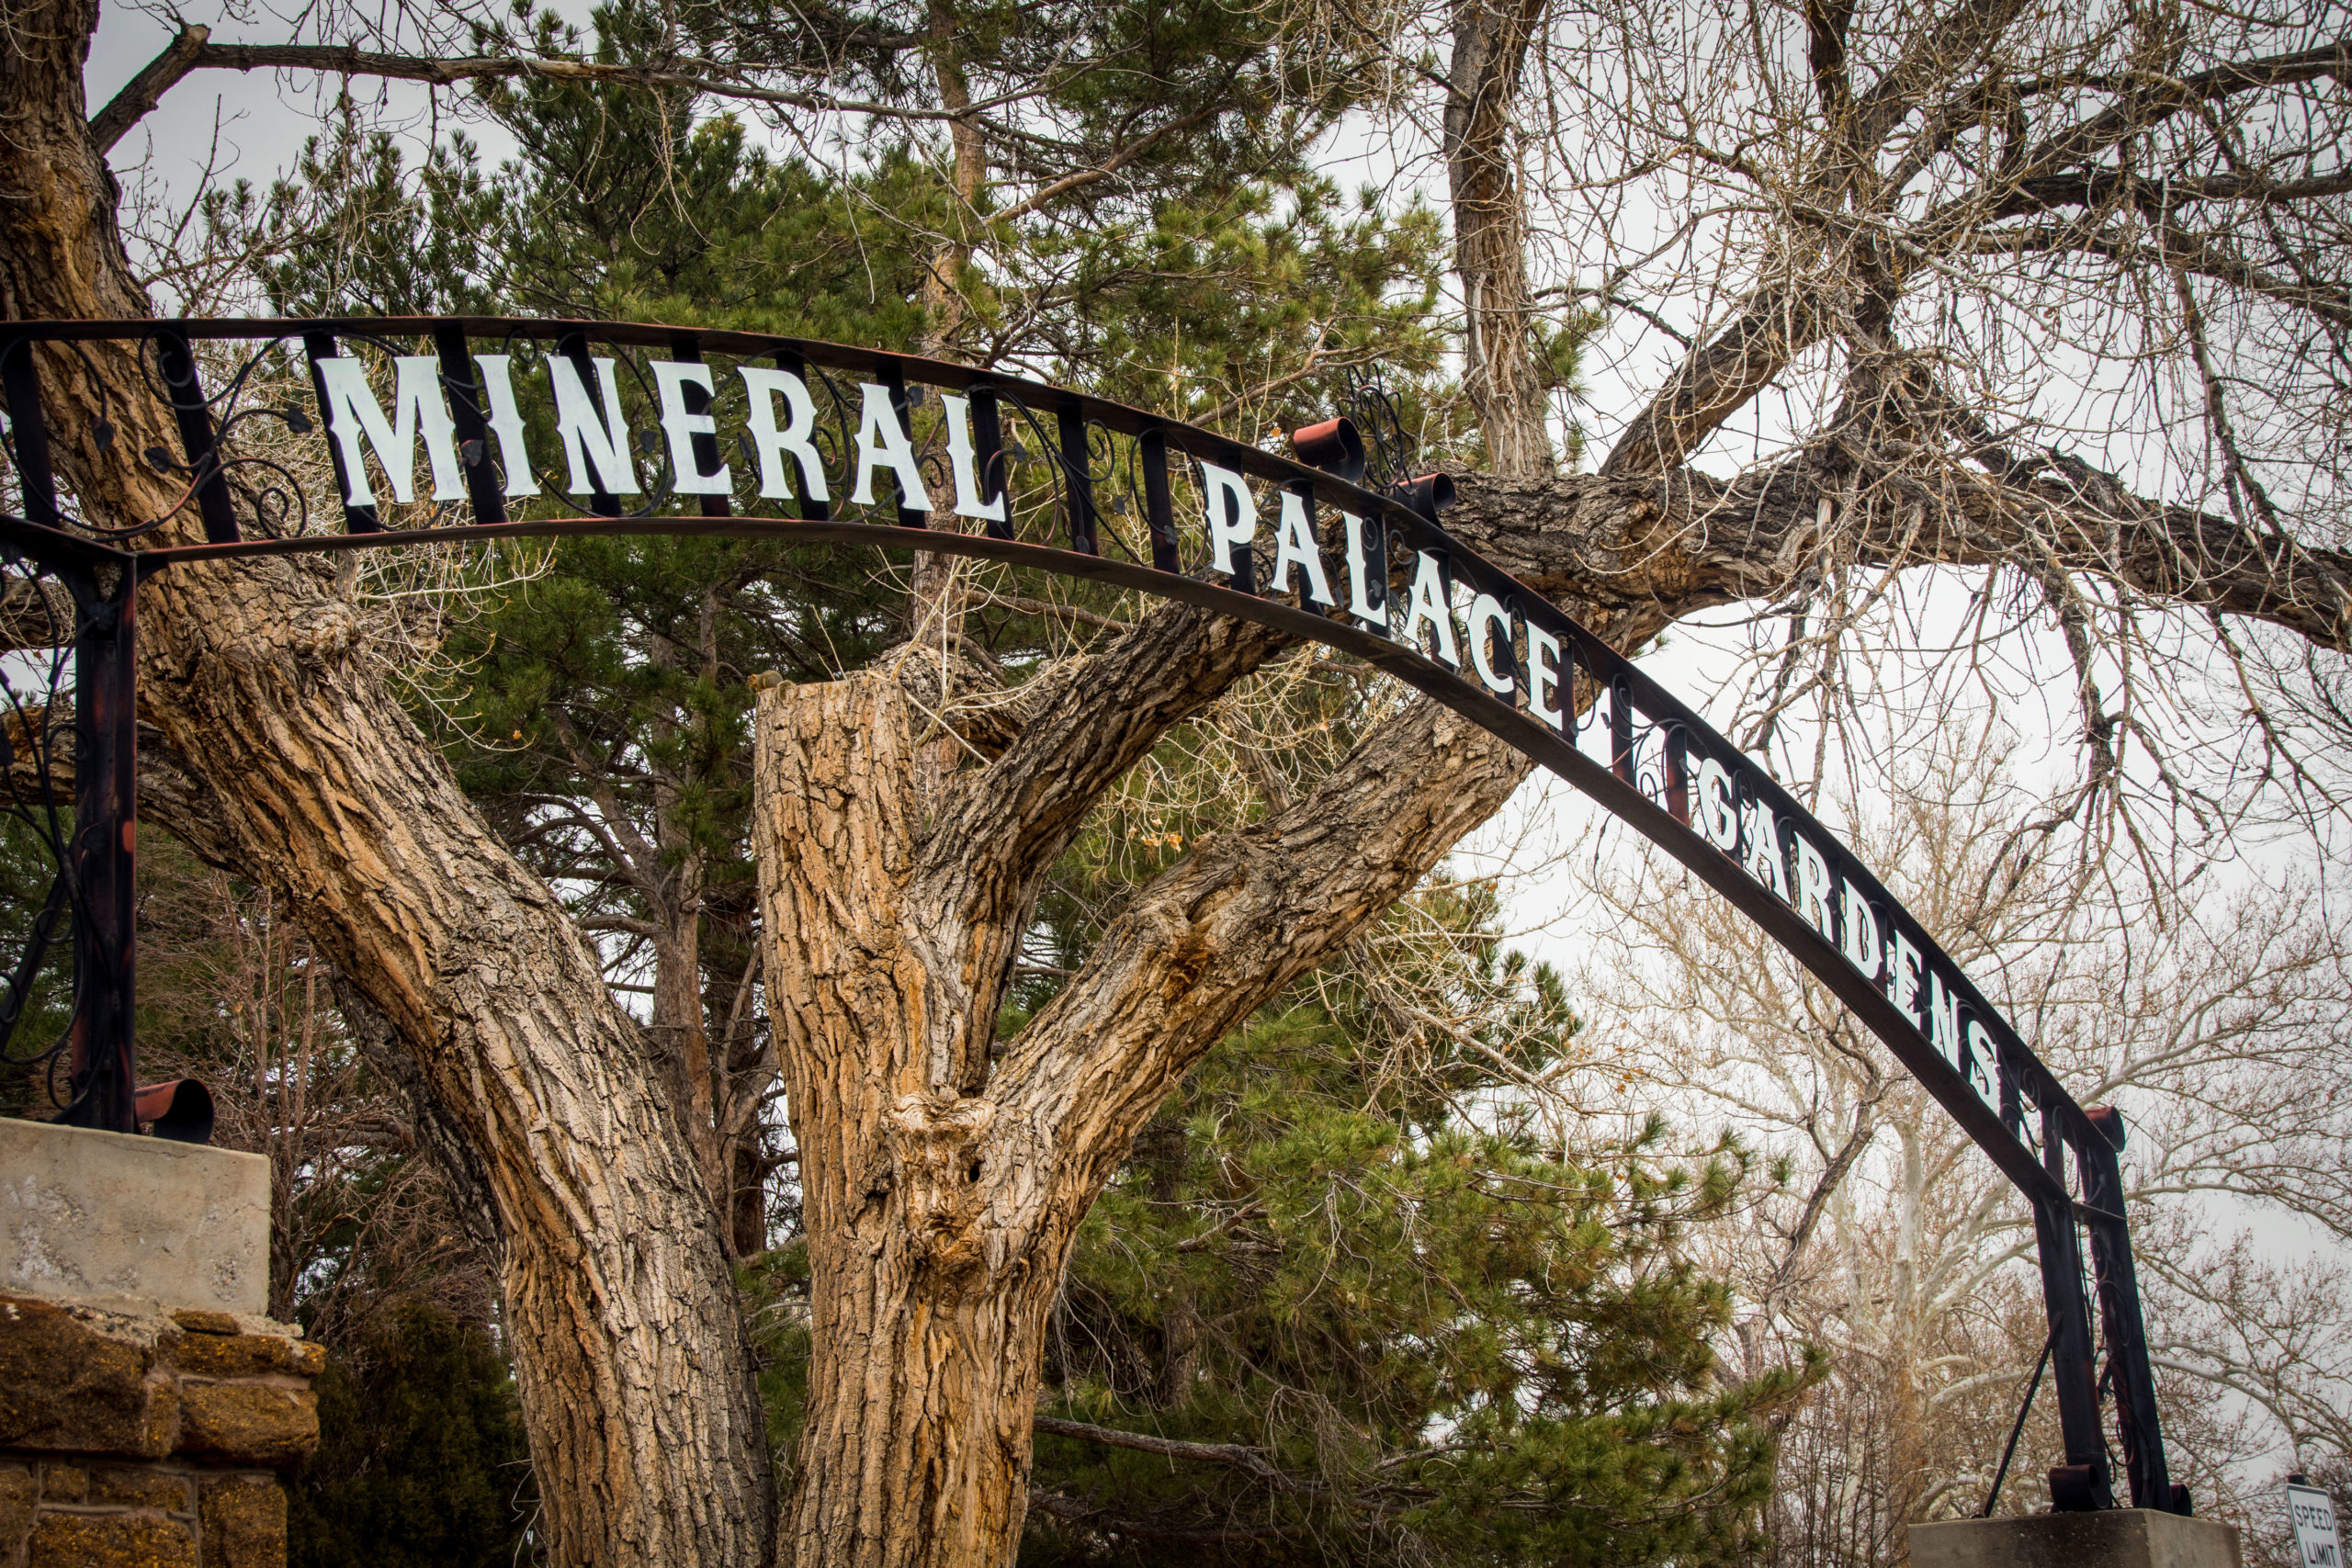 The long-demolished Mineral Palace still lends its name to a leafy park in Pueblo, but it's heyday is mostly forgotten.